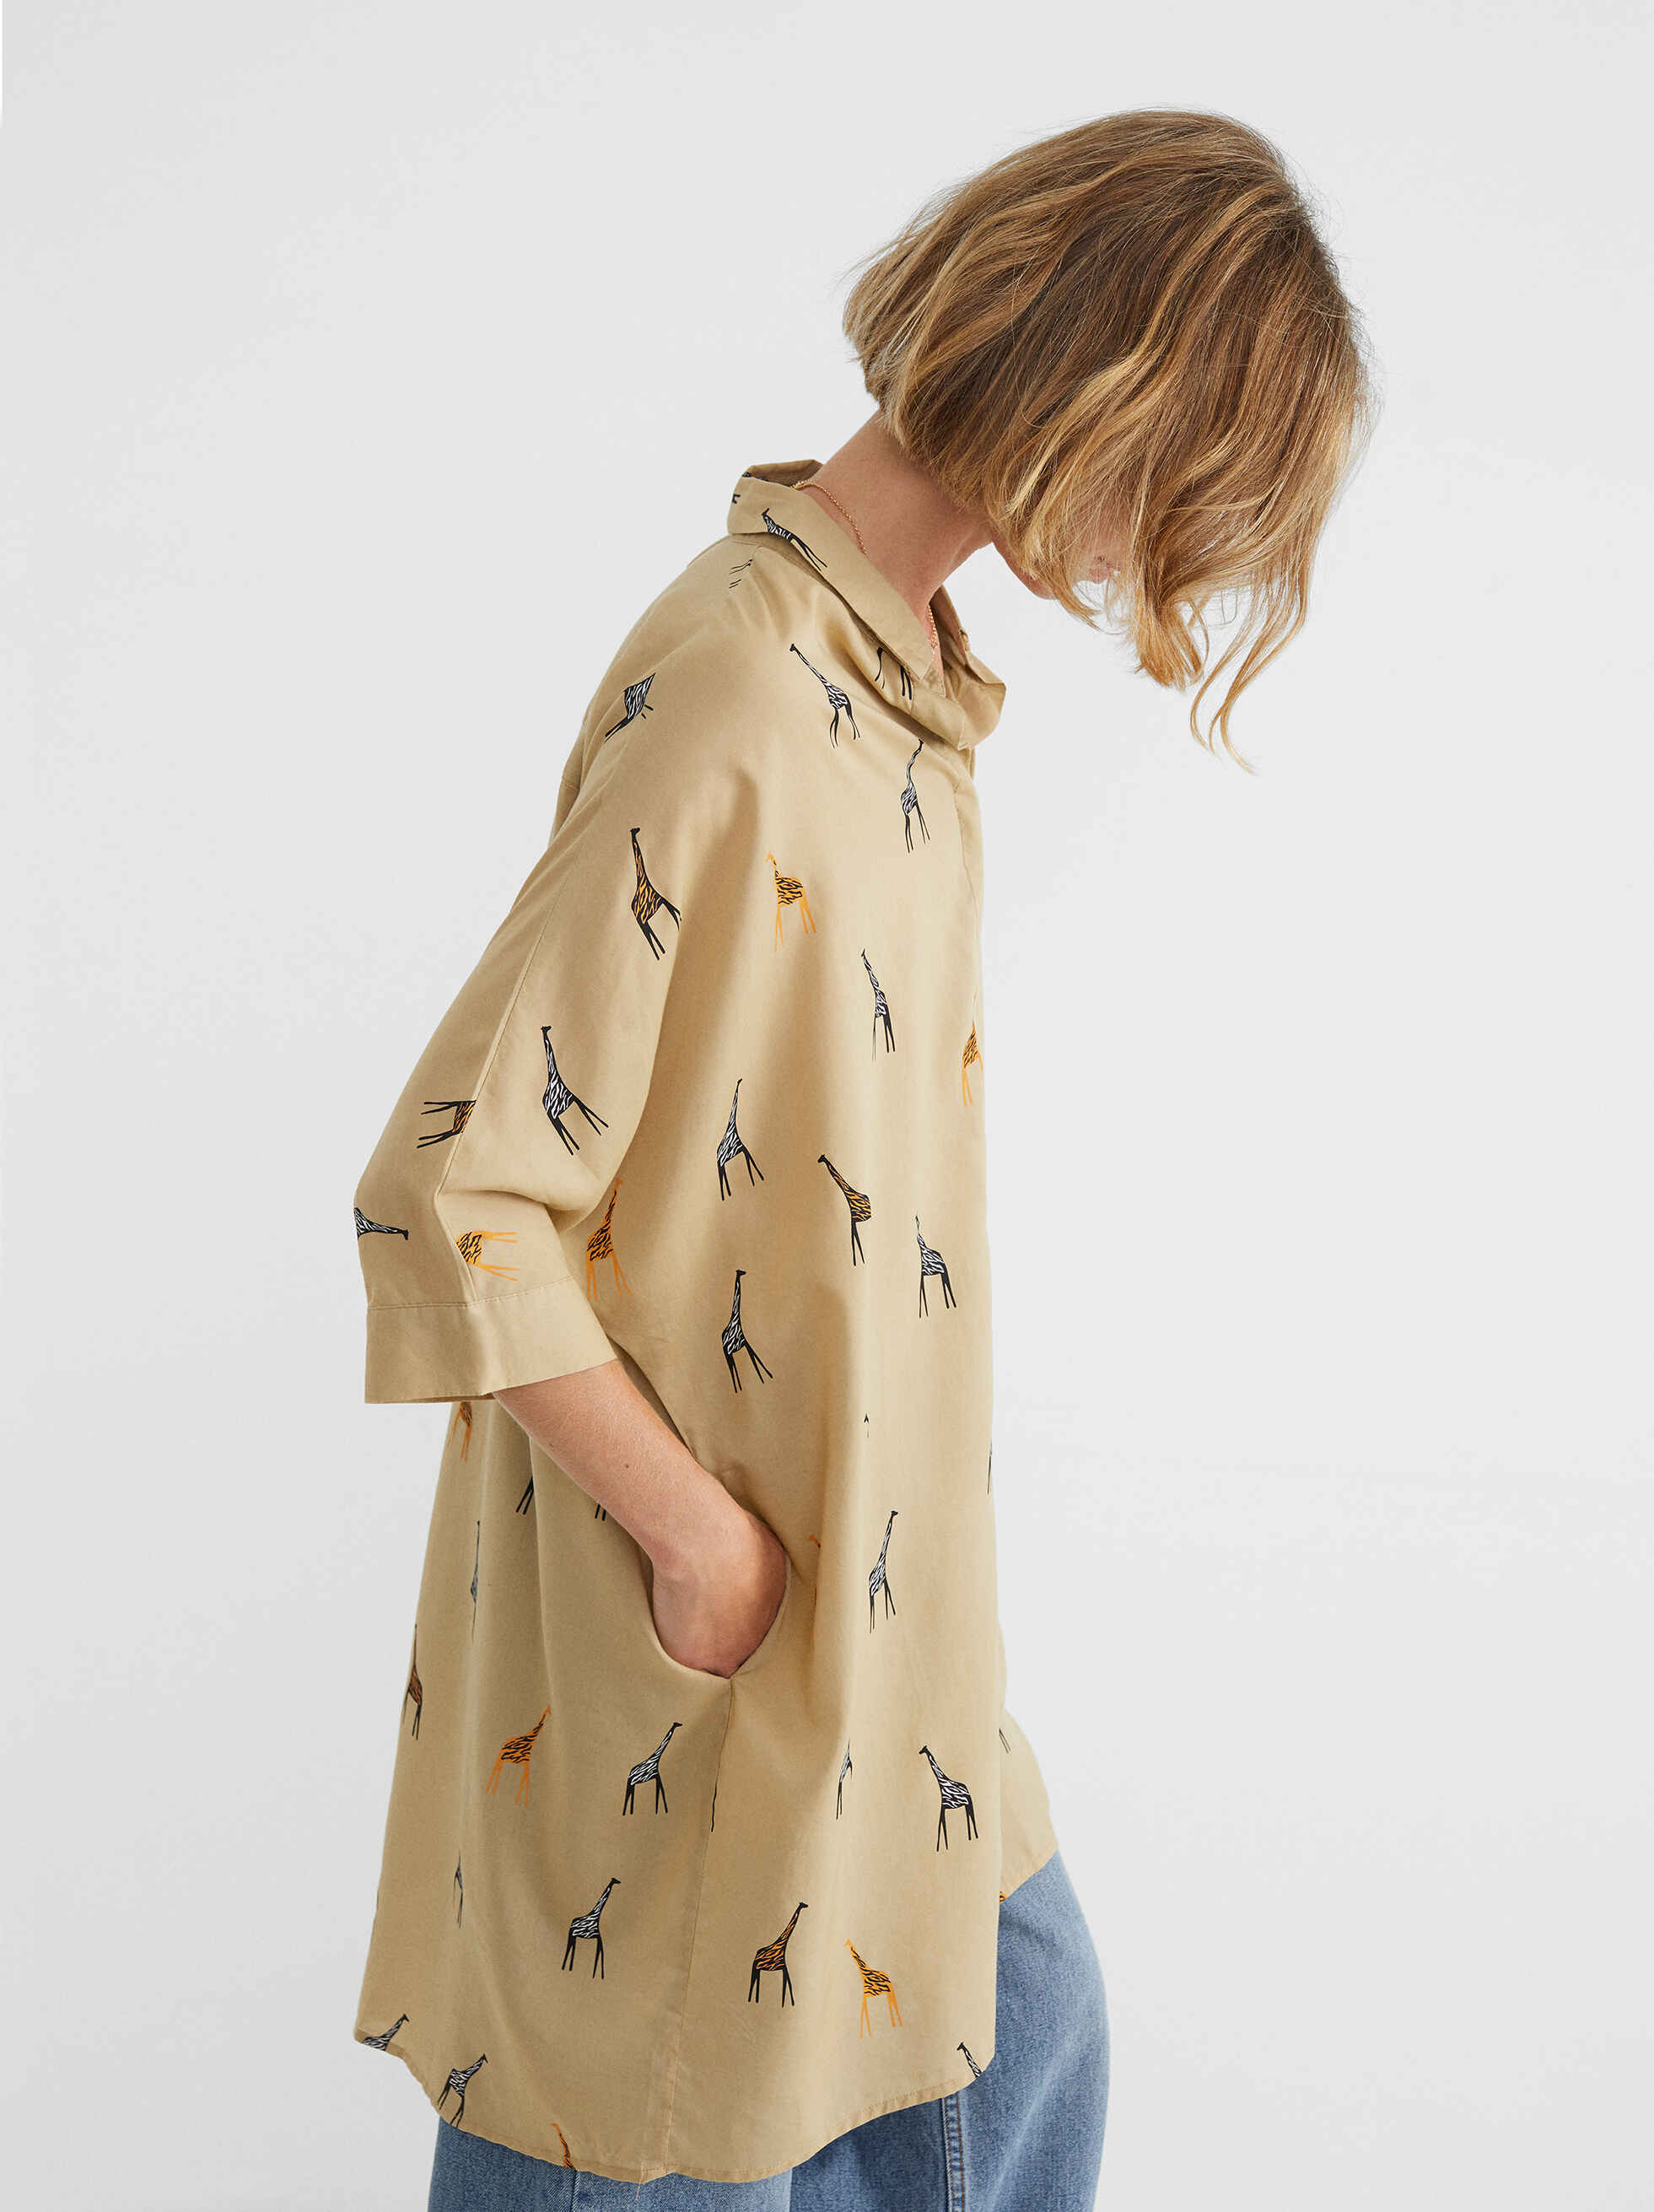 Oversize Dress With Giraffe Print, Beige, hi-res